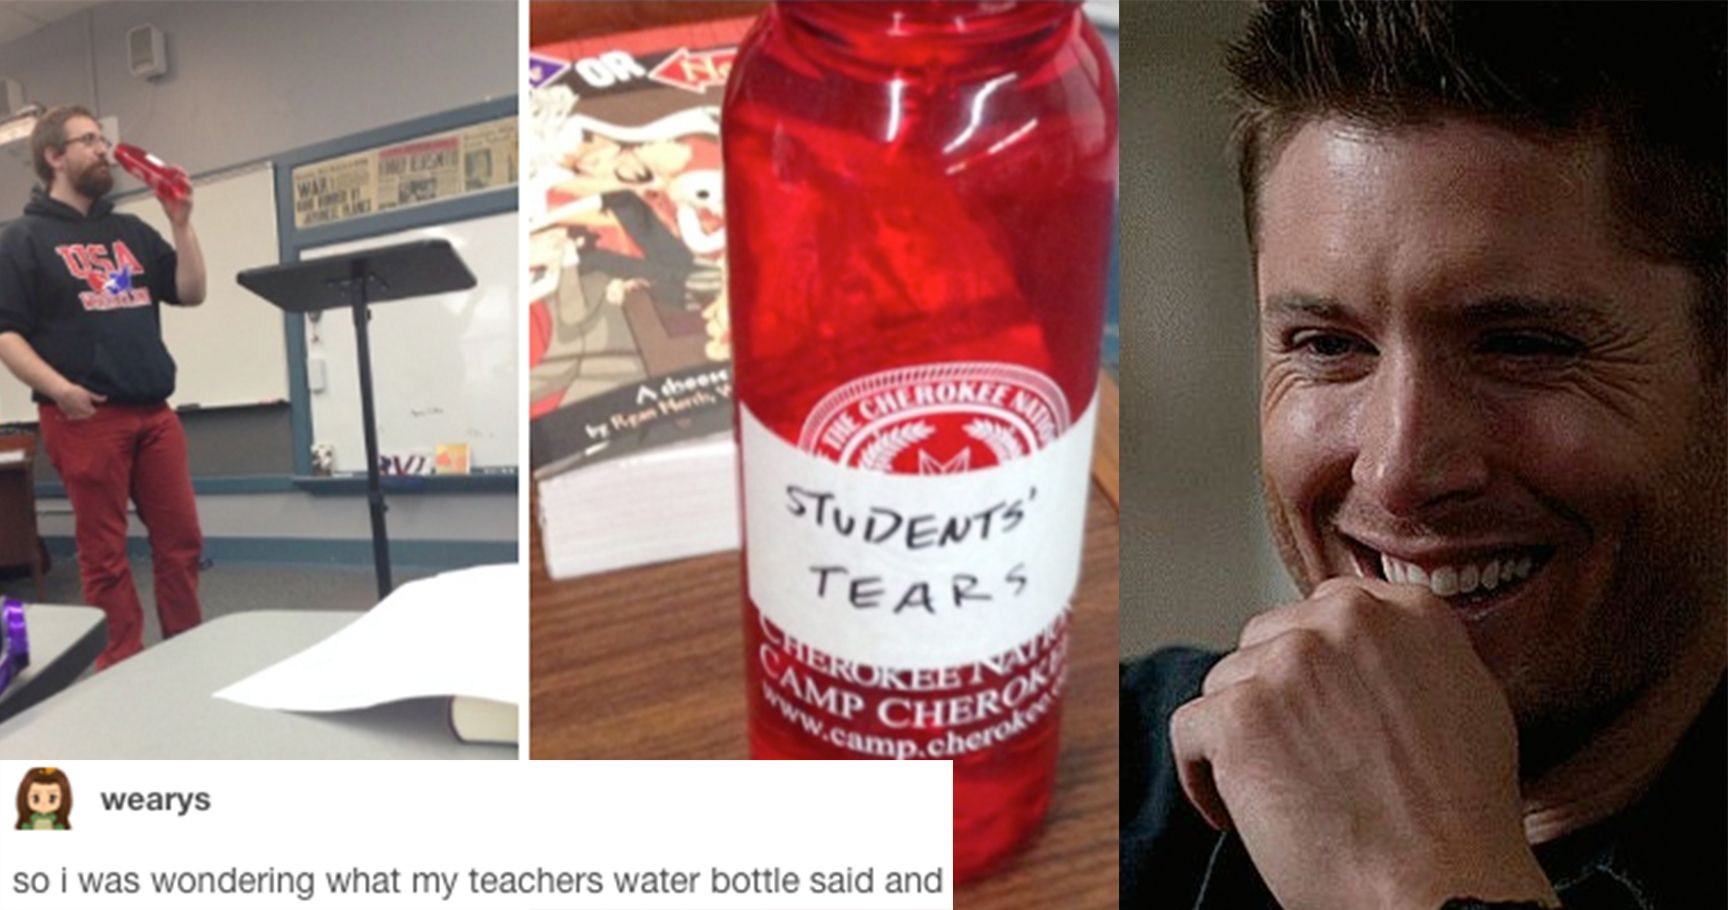 15 Savage Teachers Who Went Above And Beyond What They're Paid